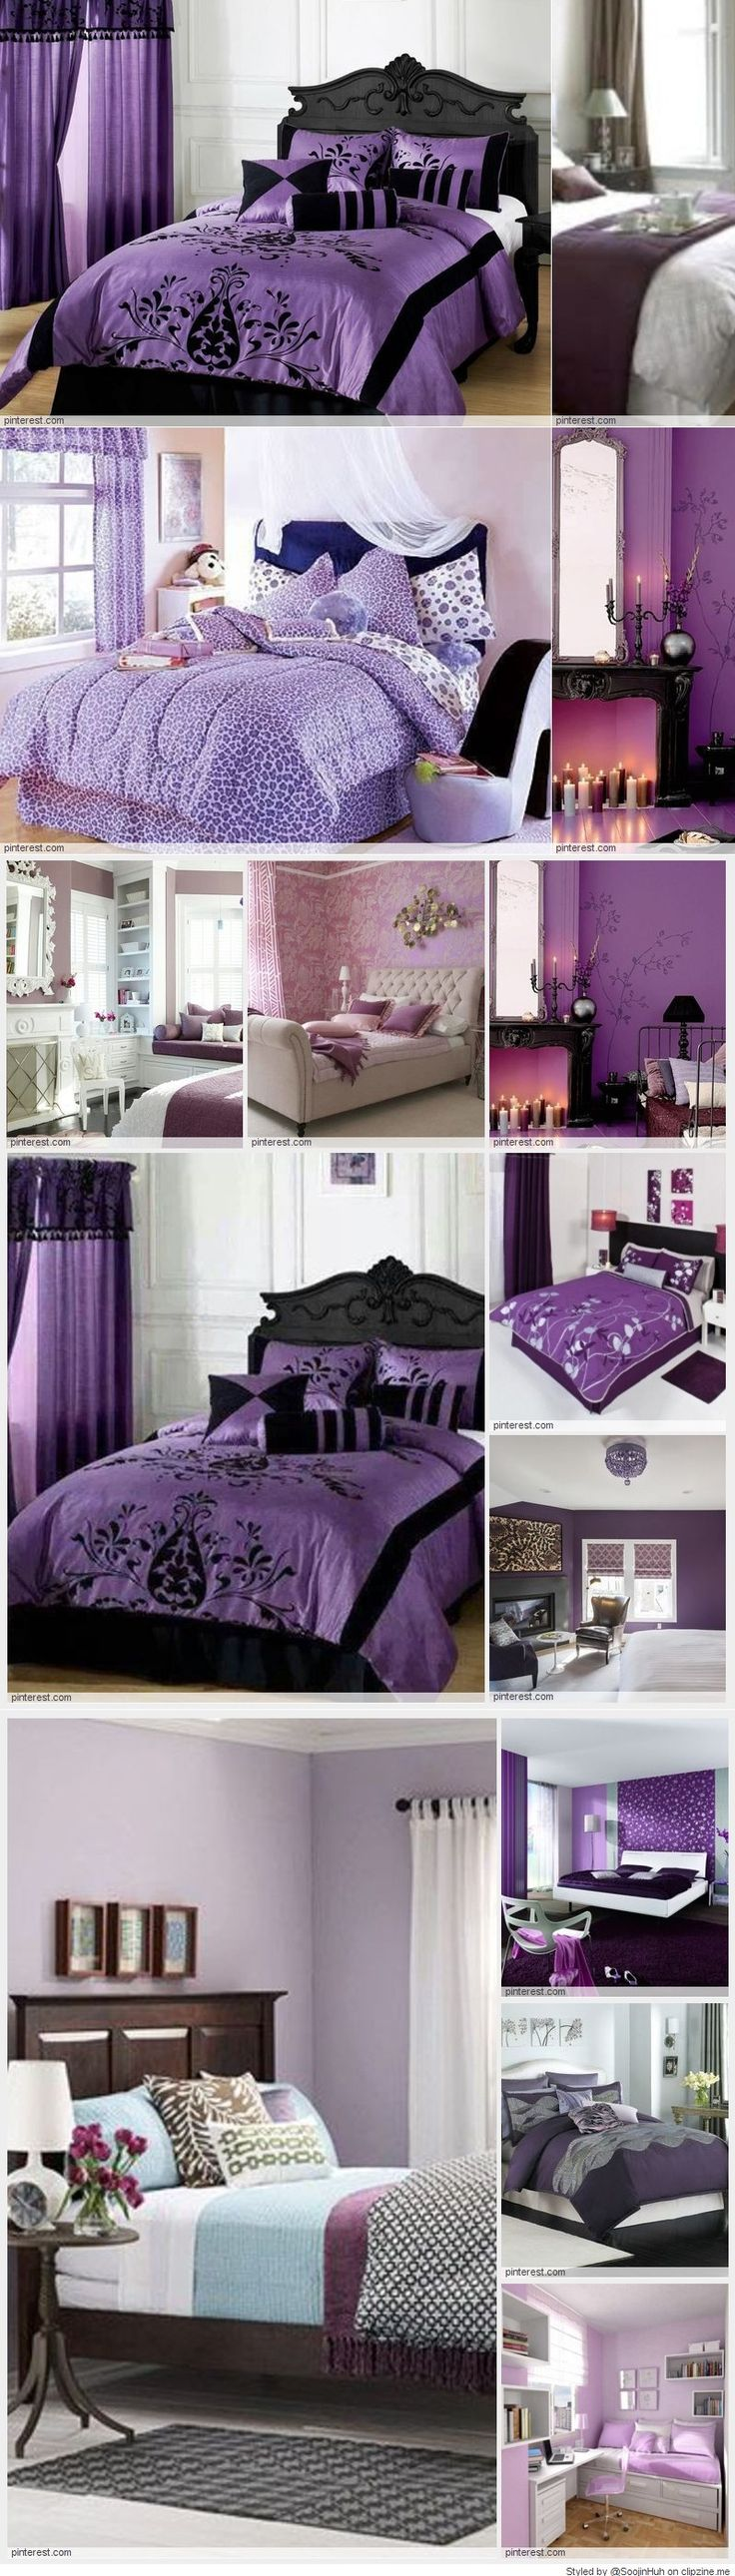 Best 20 Purple bedroom decor ideas on Pinterest